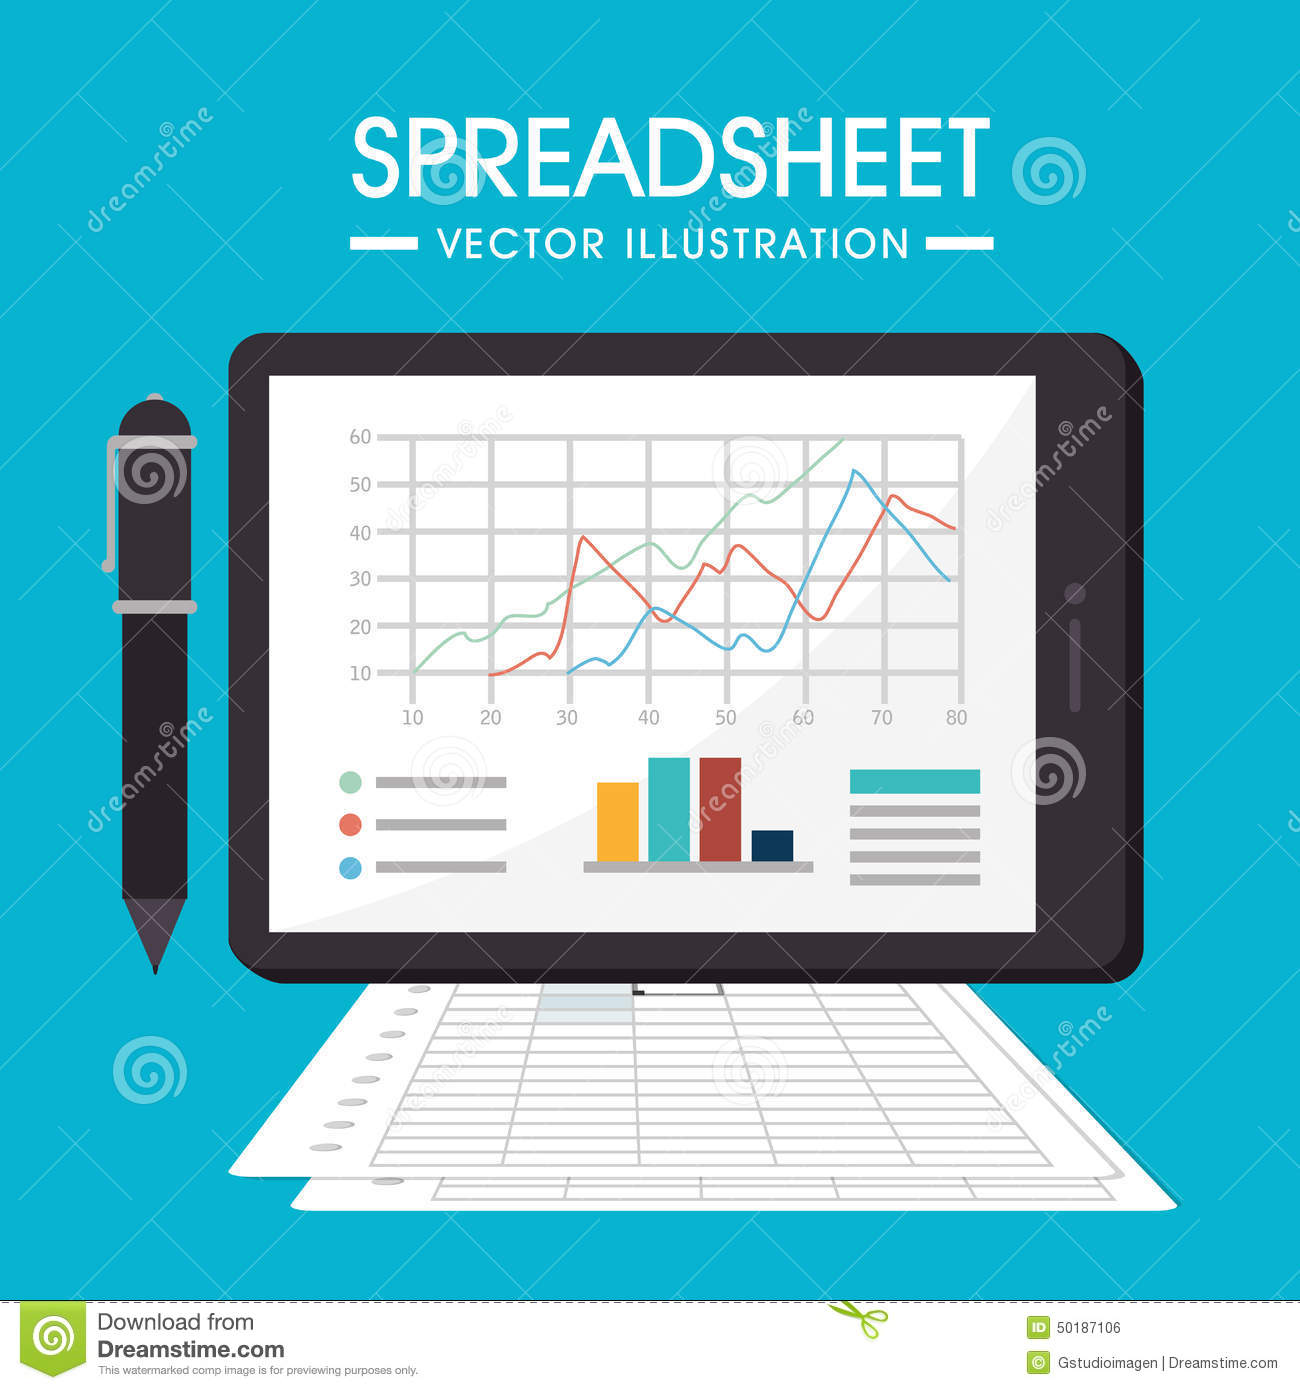 Vector Drawing Lines Excel : Spreadsheet design vector illustration stock